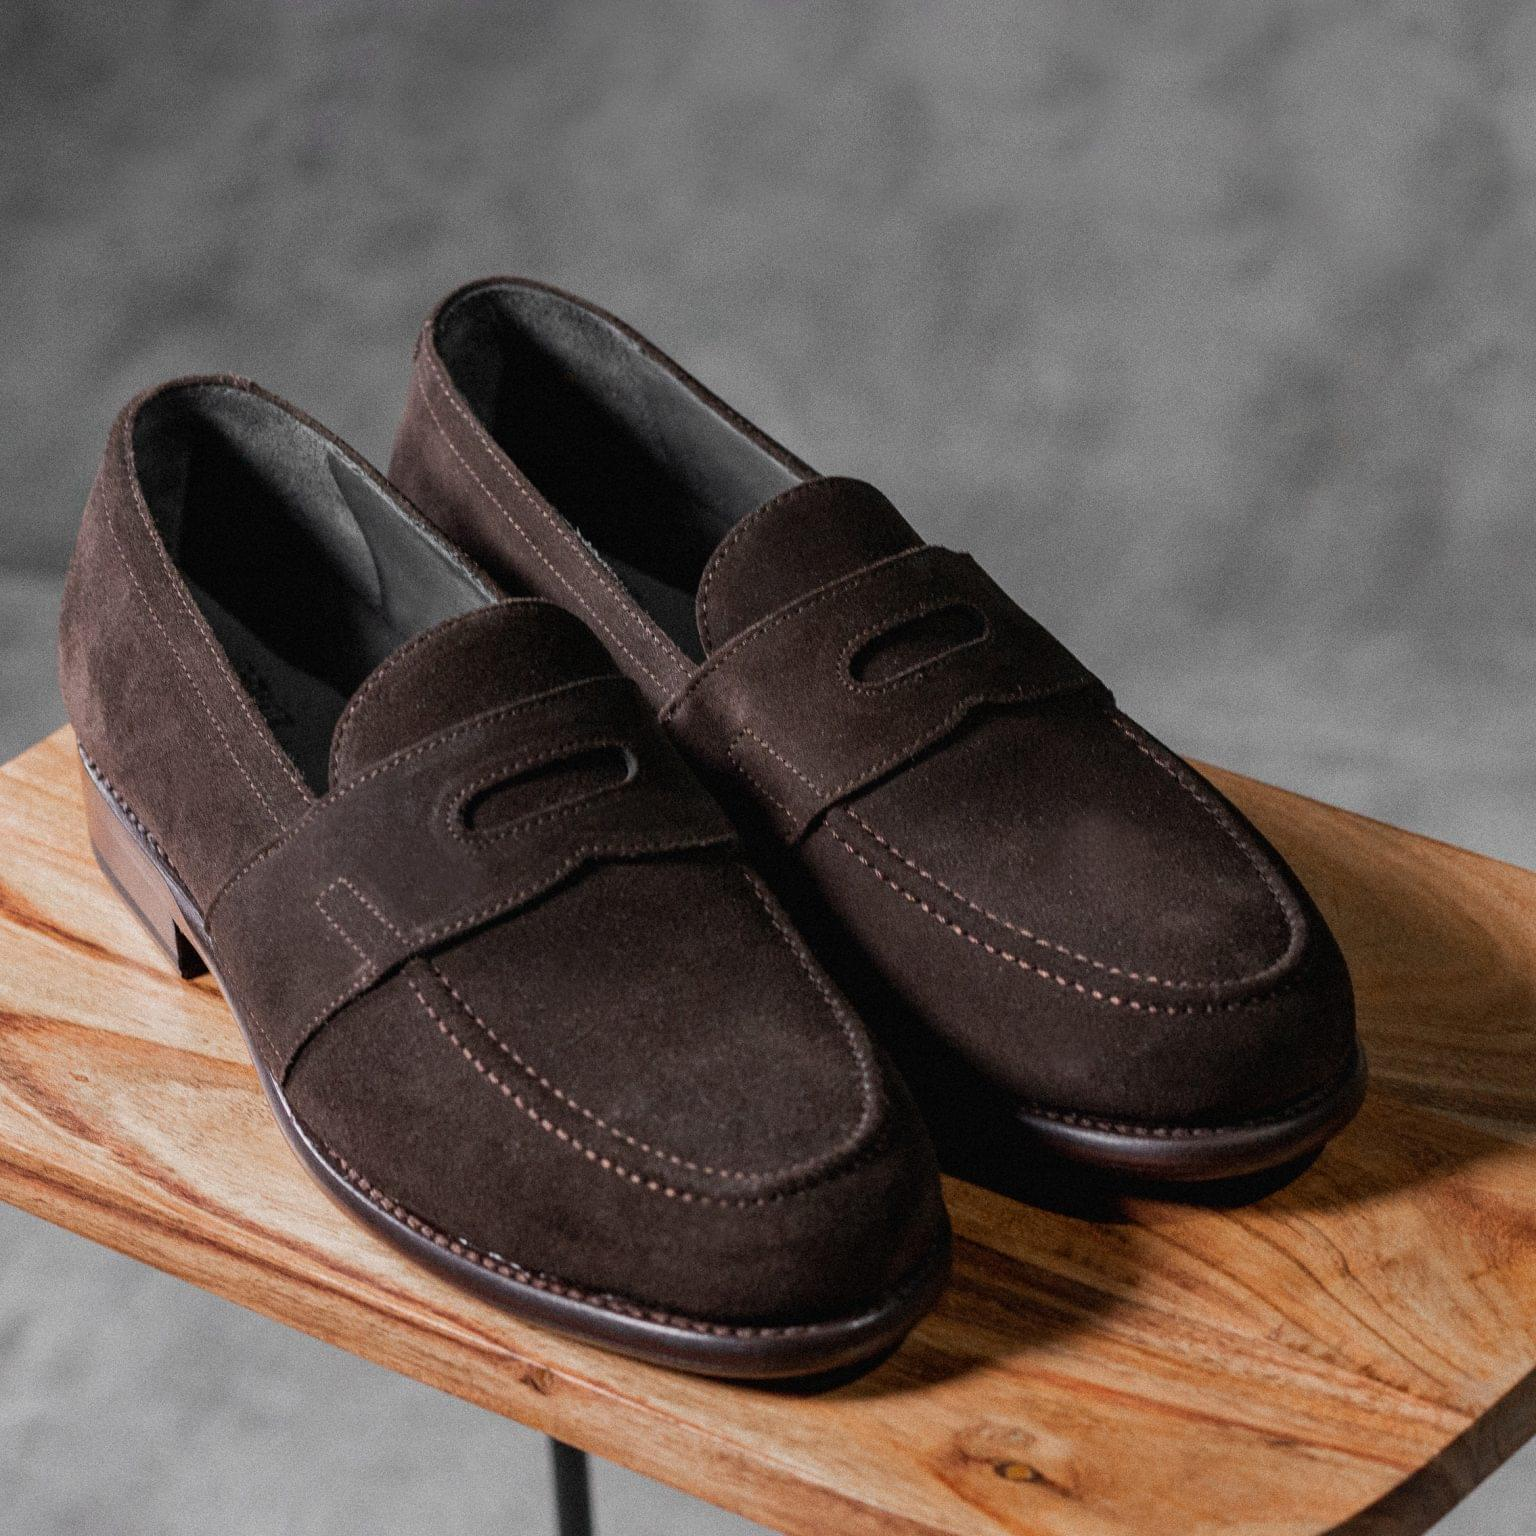 LOAFERS-MOCASINES-01-02-The-Seëlk-7